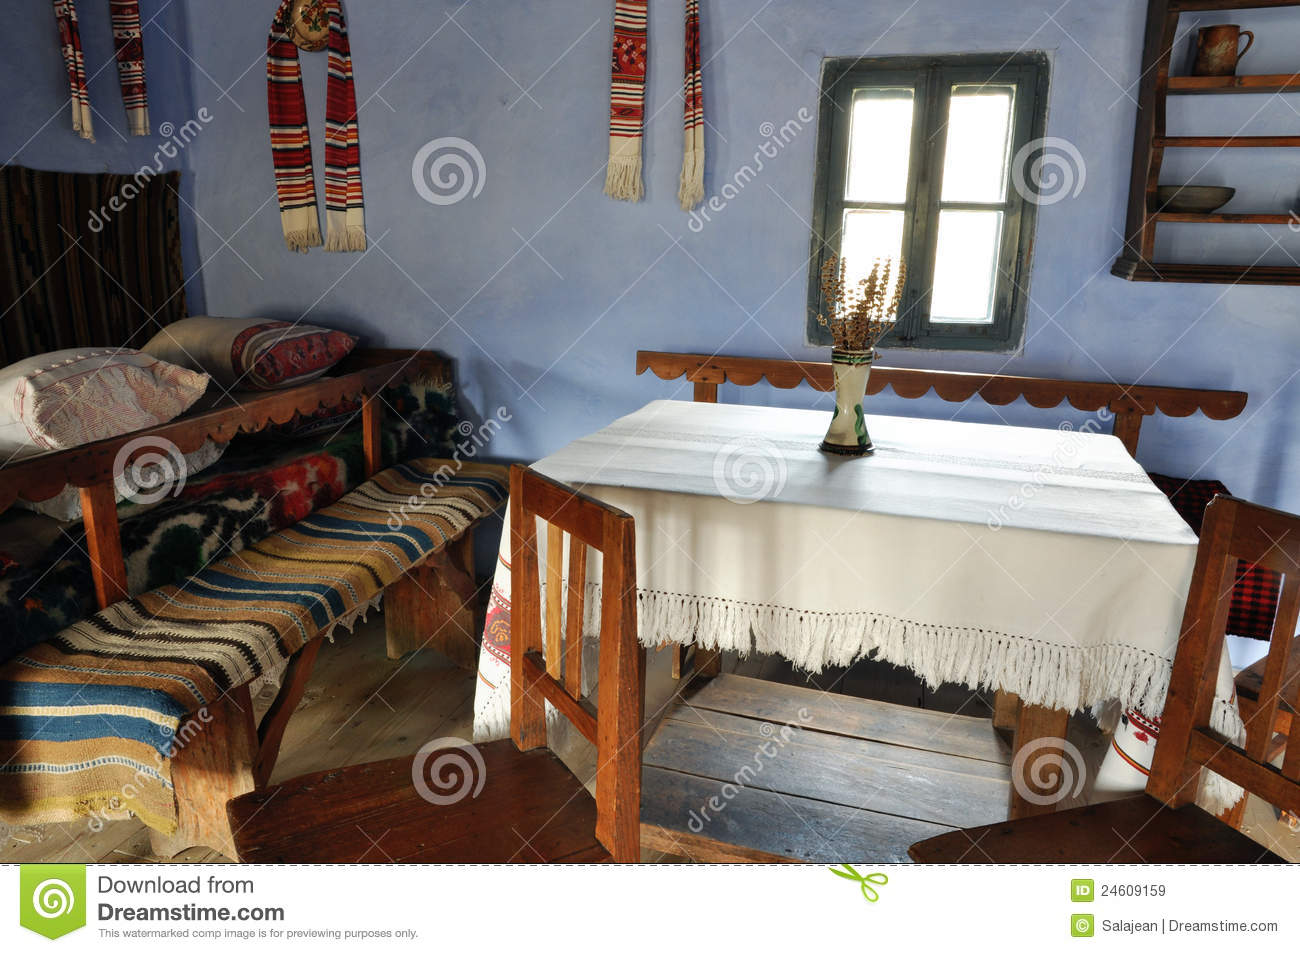 Traditional romanian house interior royalty free stock for Traditional house interior